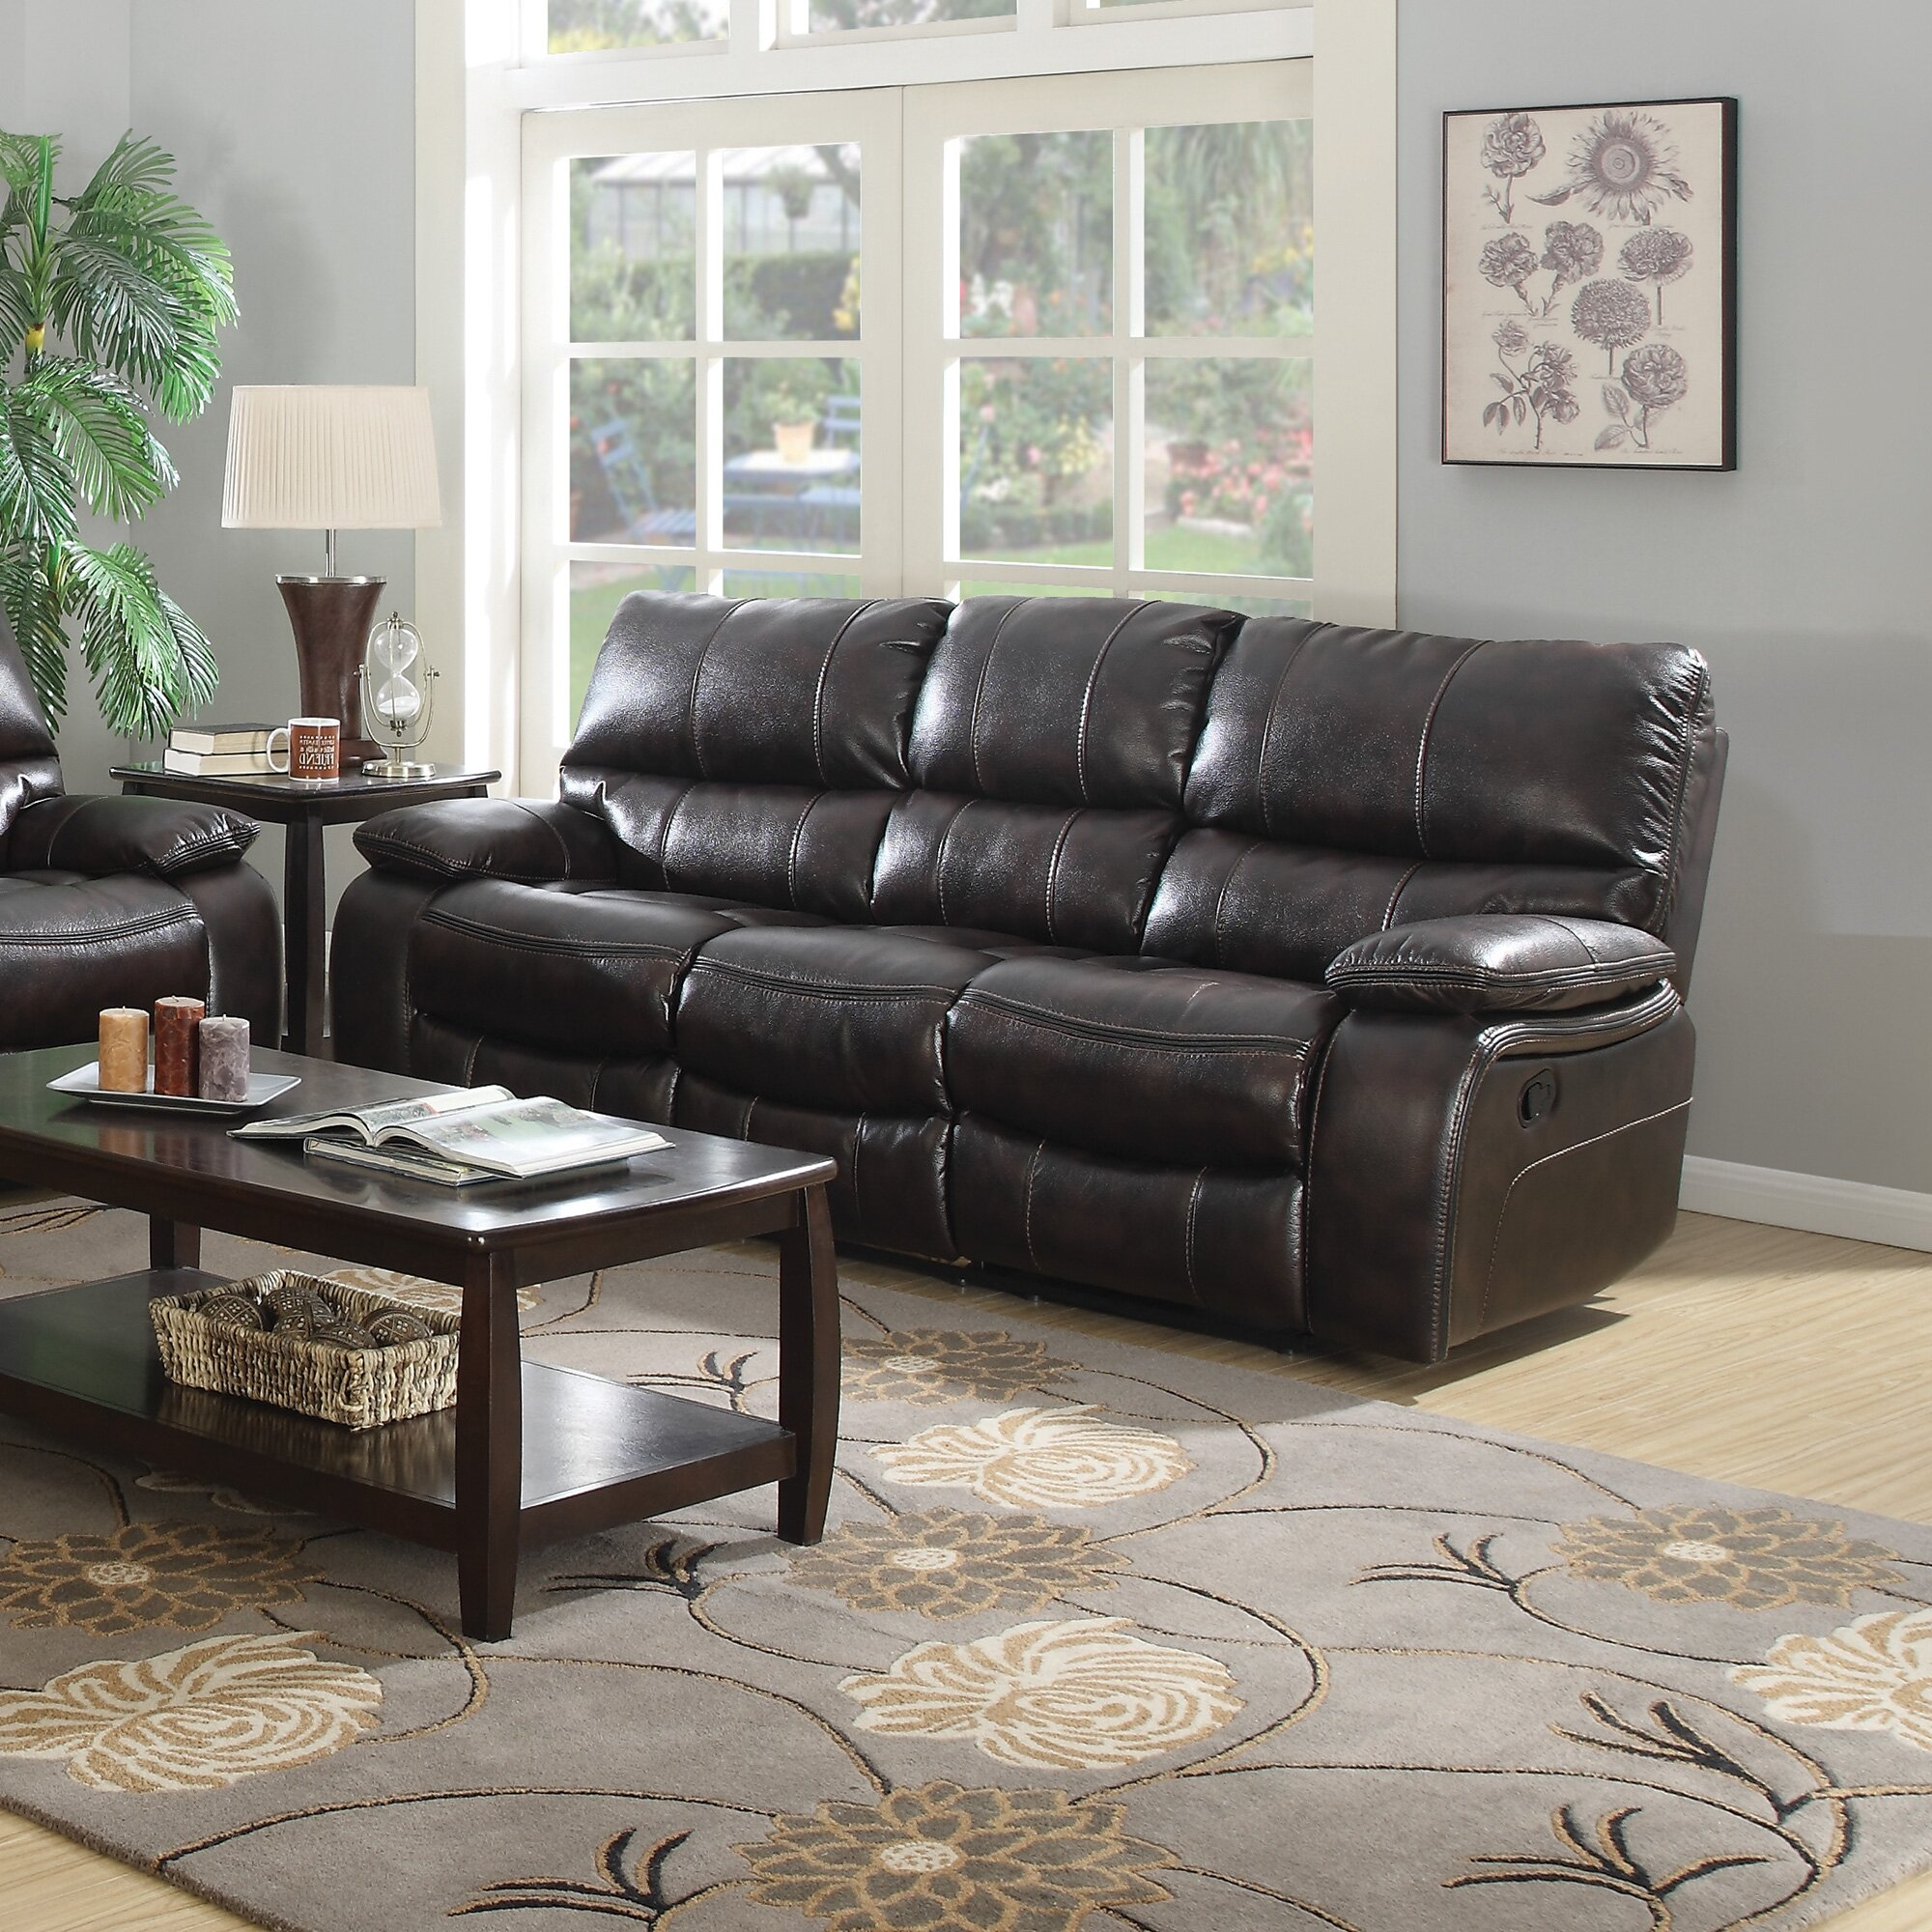 Wildon Home Willemse Living Room Collection